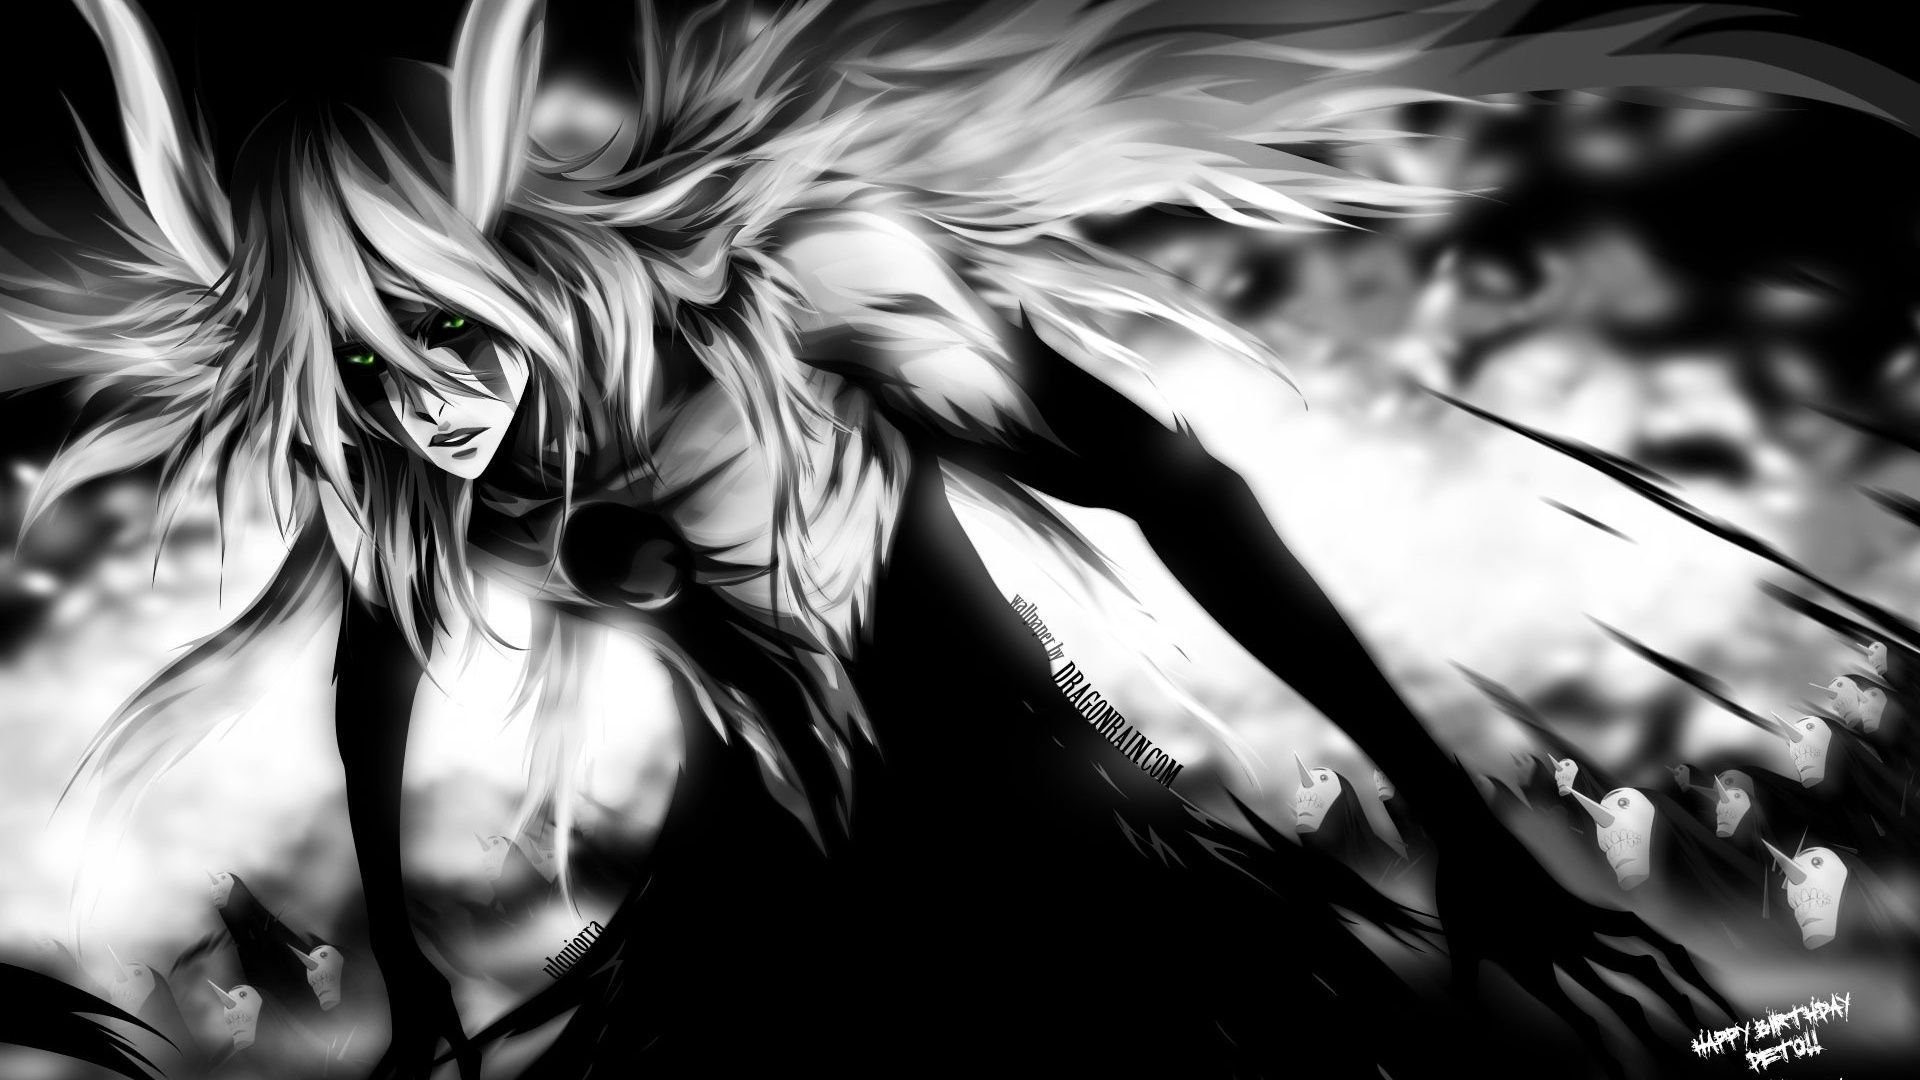 Cool Anime Wallpapers HD 1920x1080 Backgrounds Of Your | Anime ...